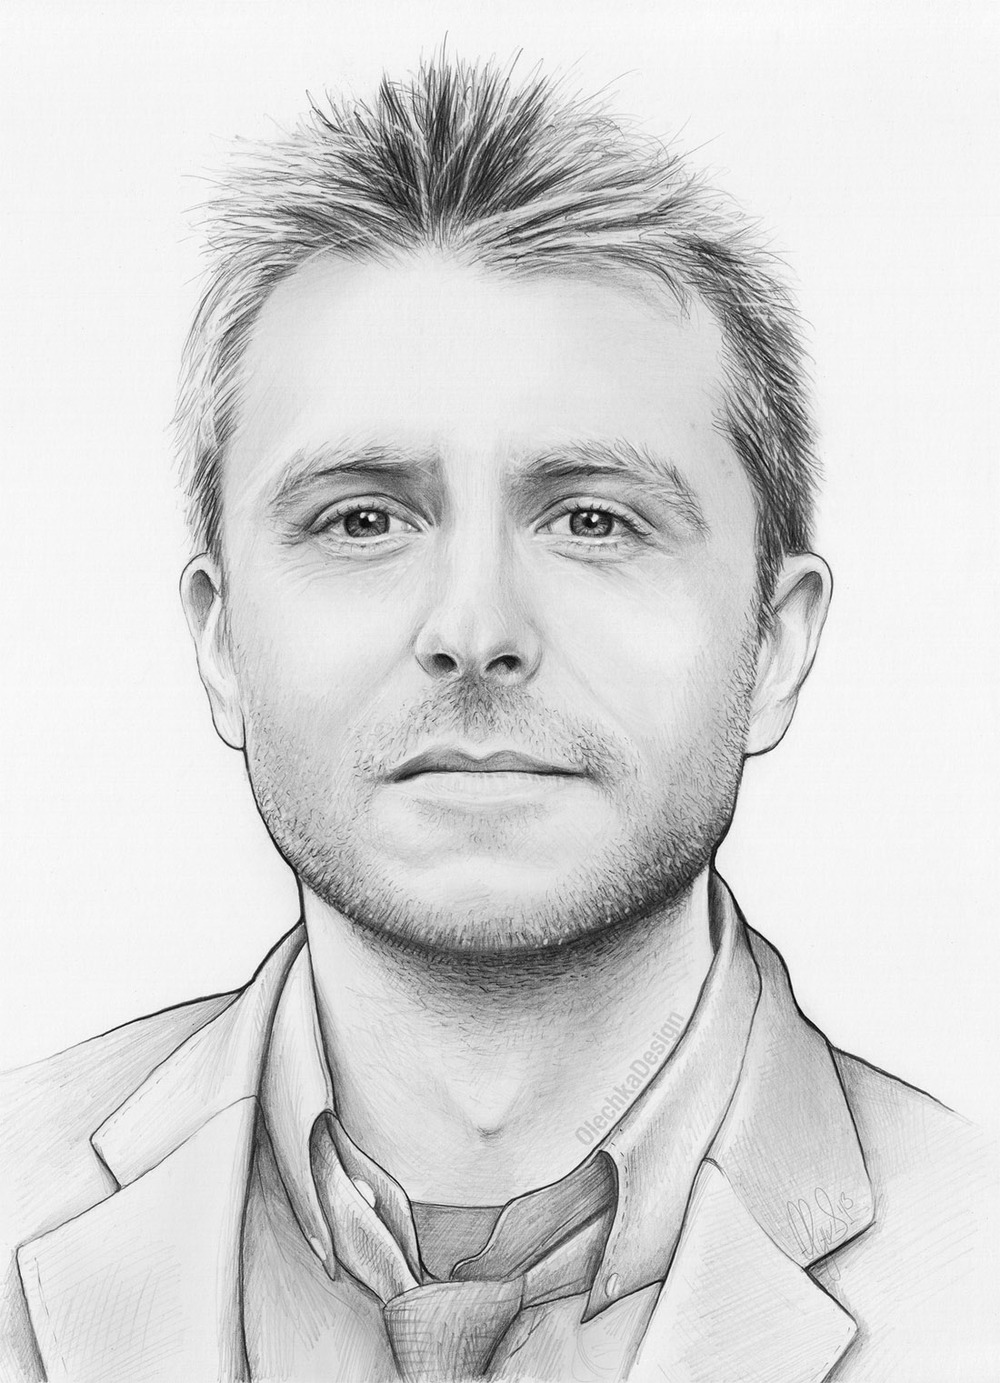 chris-hardwick-portrait.jpg